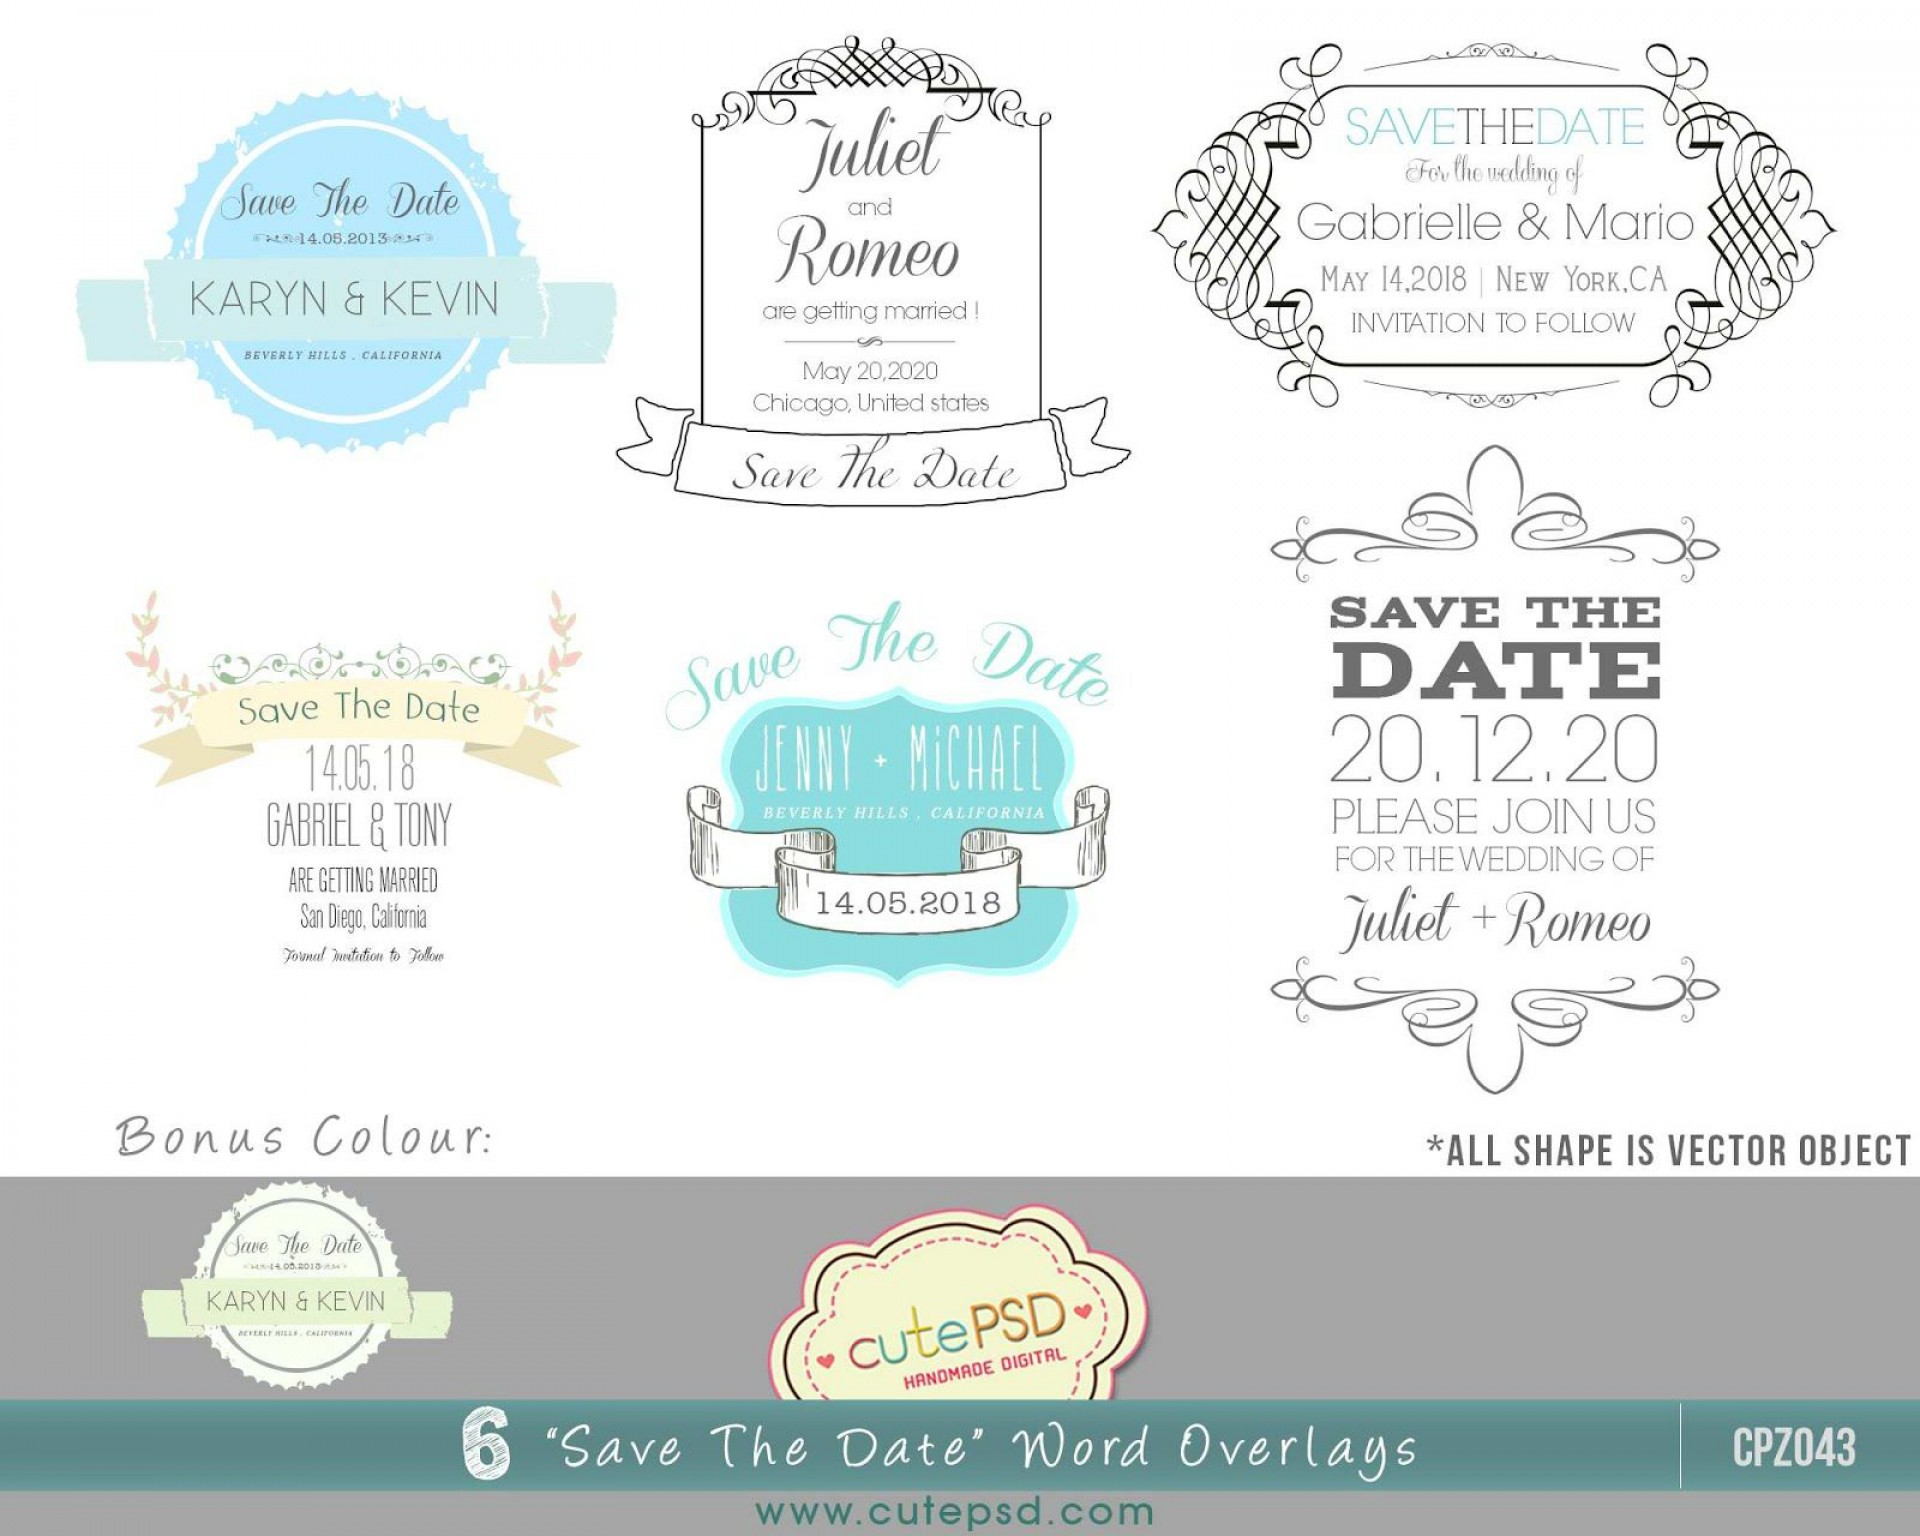 003 Beautiful Save The Date Word Template Concept  Free Birthday For Microsoft Postcard Flyer1920